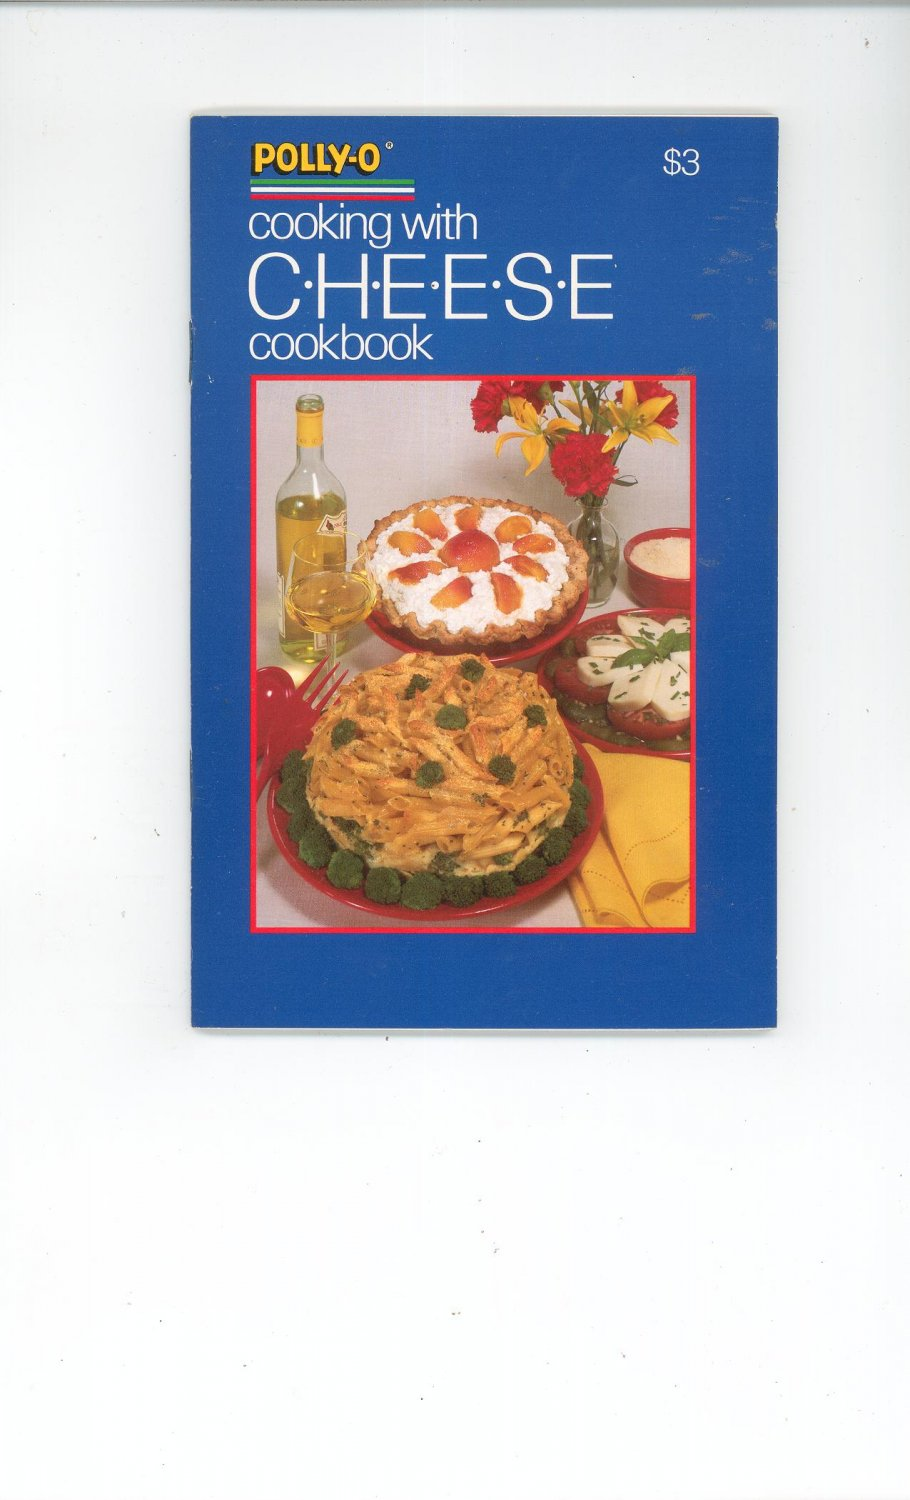 Polly-O Cooking With Cheese Cookbook PollyO Polly O